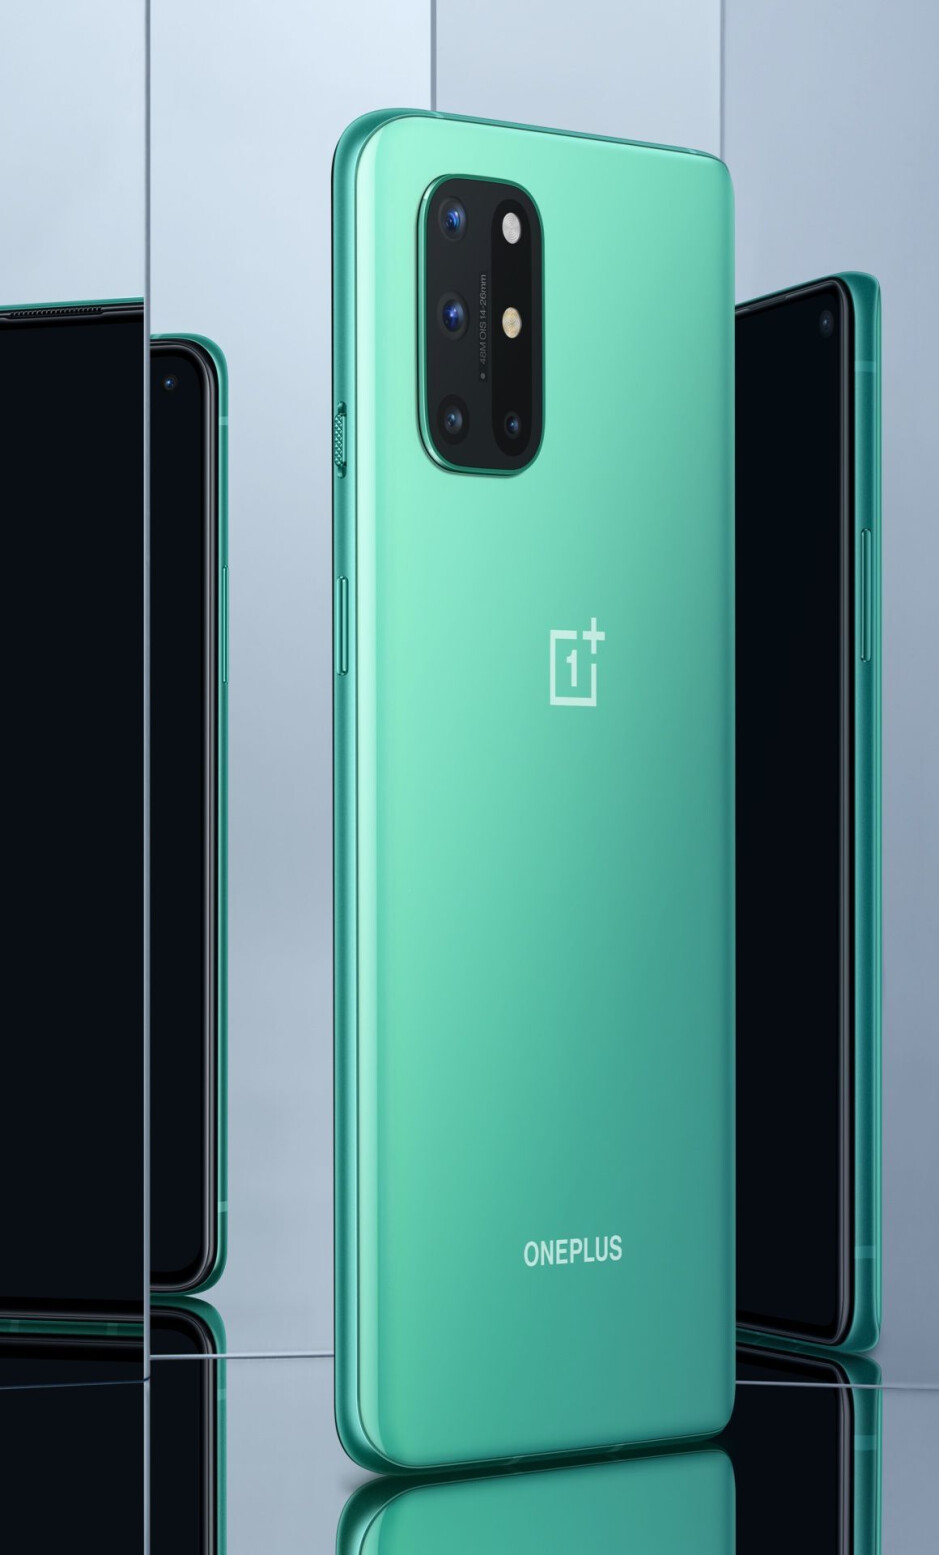 Aquamarine Green - The OnePlus 8T arrives with two batteries, a 120Hz flat display, and 65W fast charging